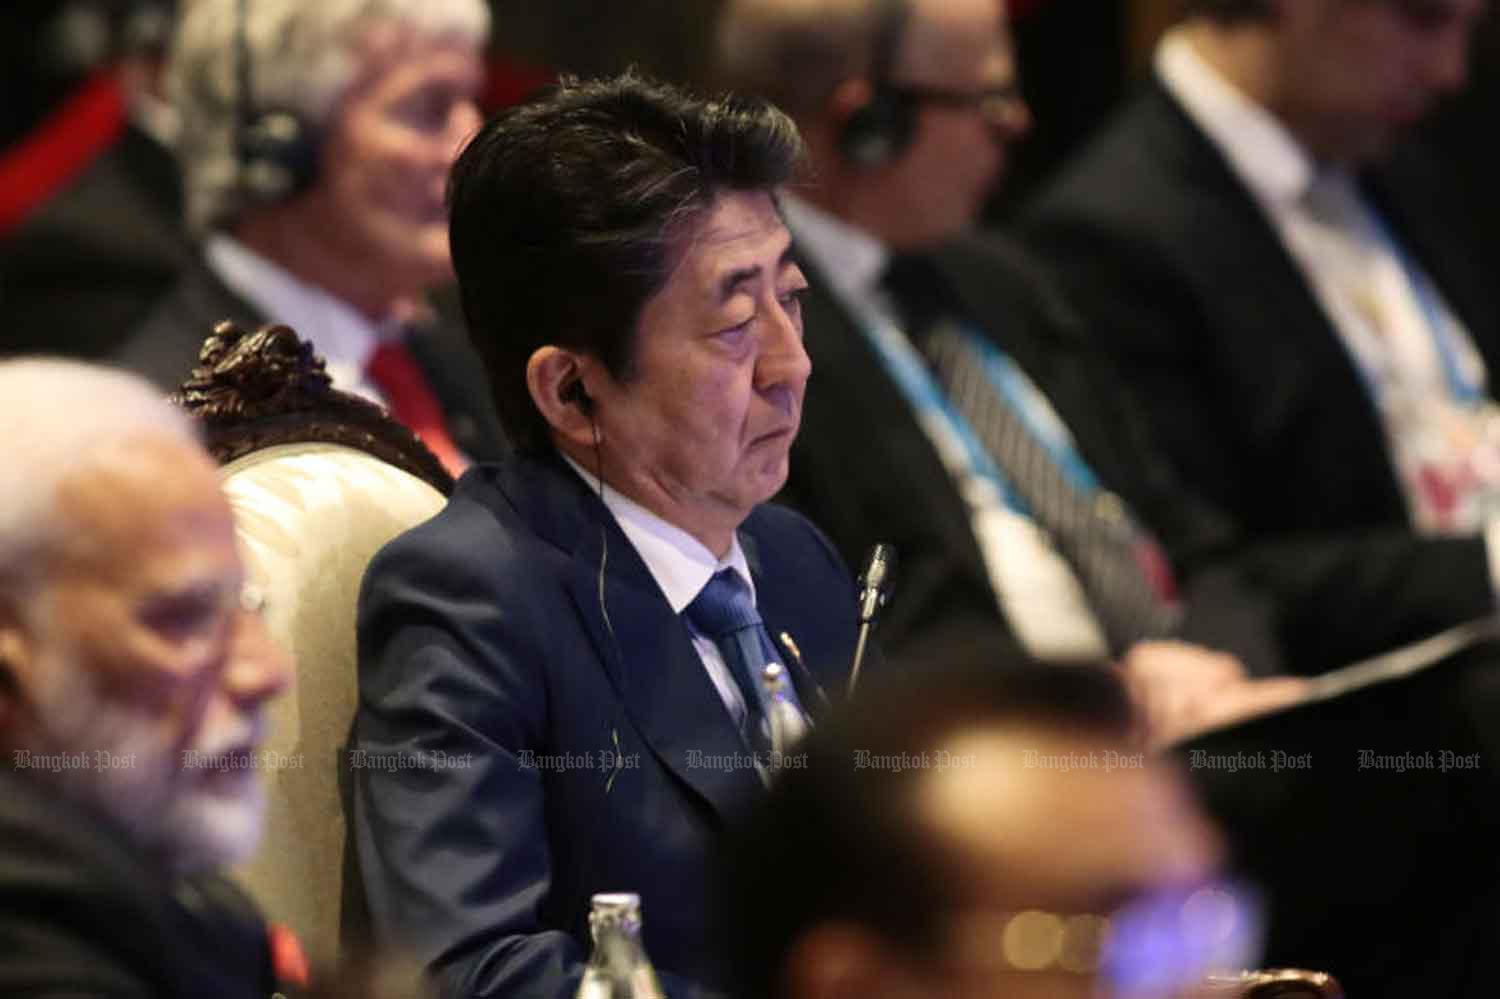 Japanese Prime Minister Shinzo Abe in the Asean Summit in Nonthaburi province on Monday. (Photo by Patipat Janthong)